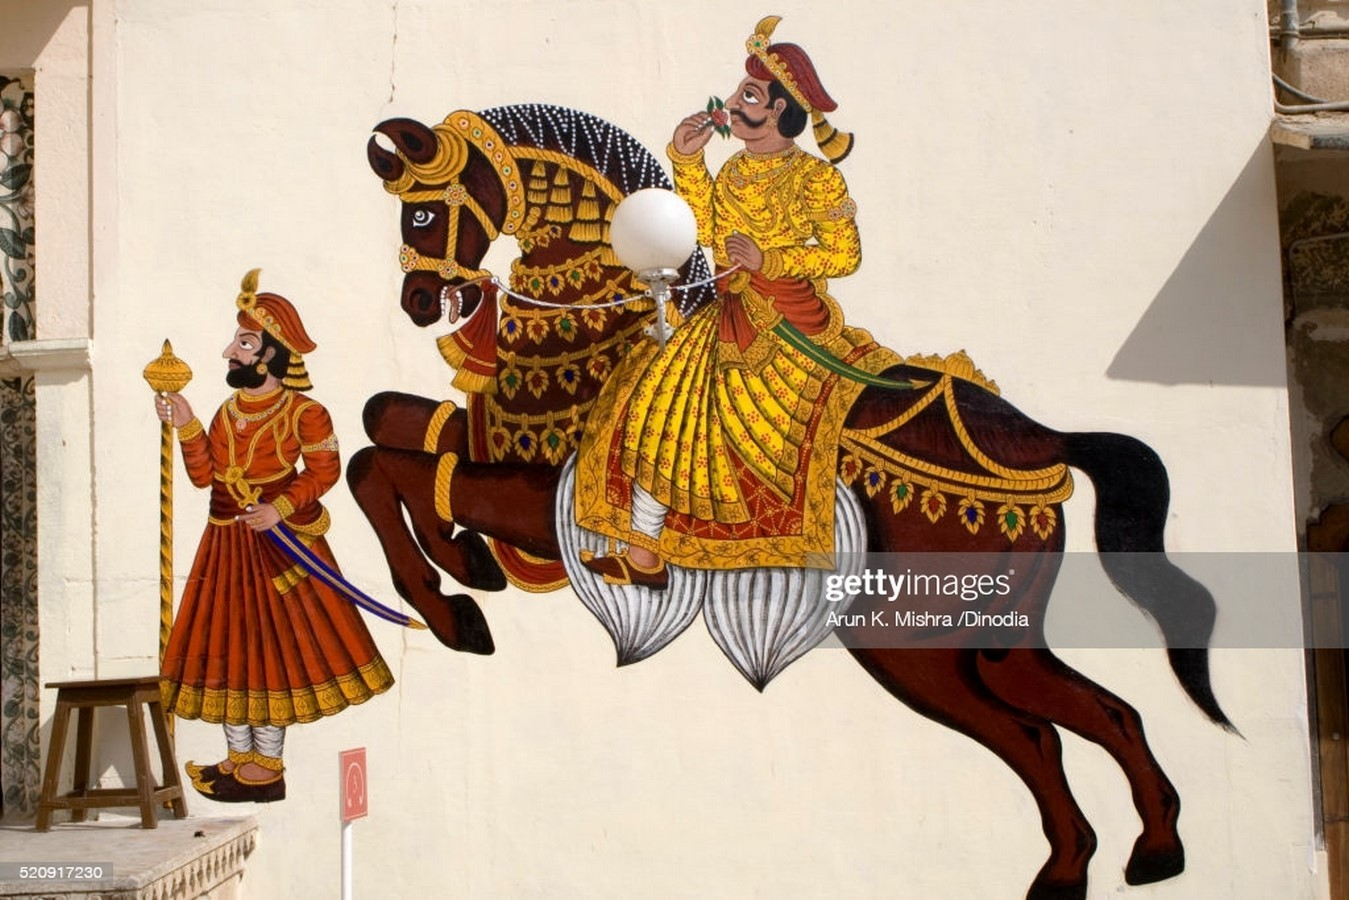 10 Inspirational Indian Mural Architecture - Sheet9